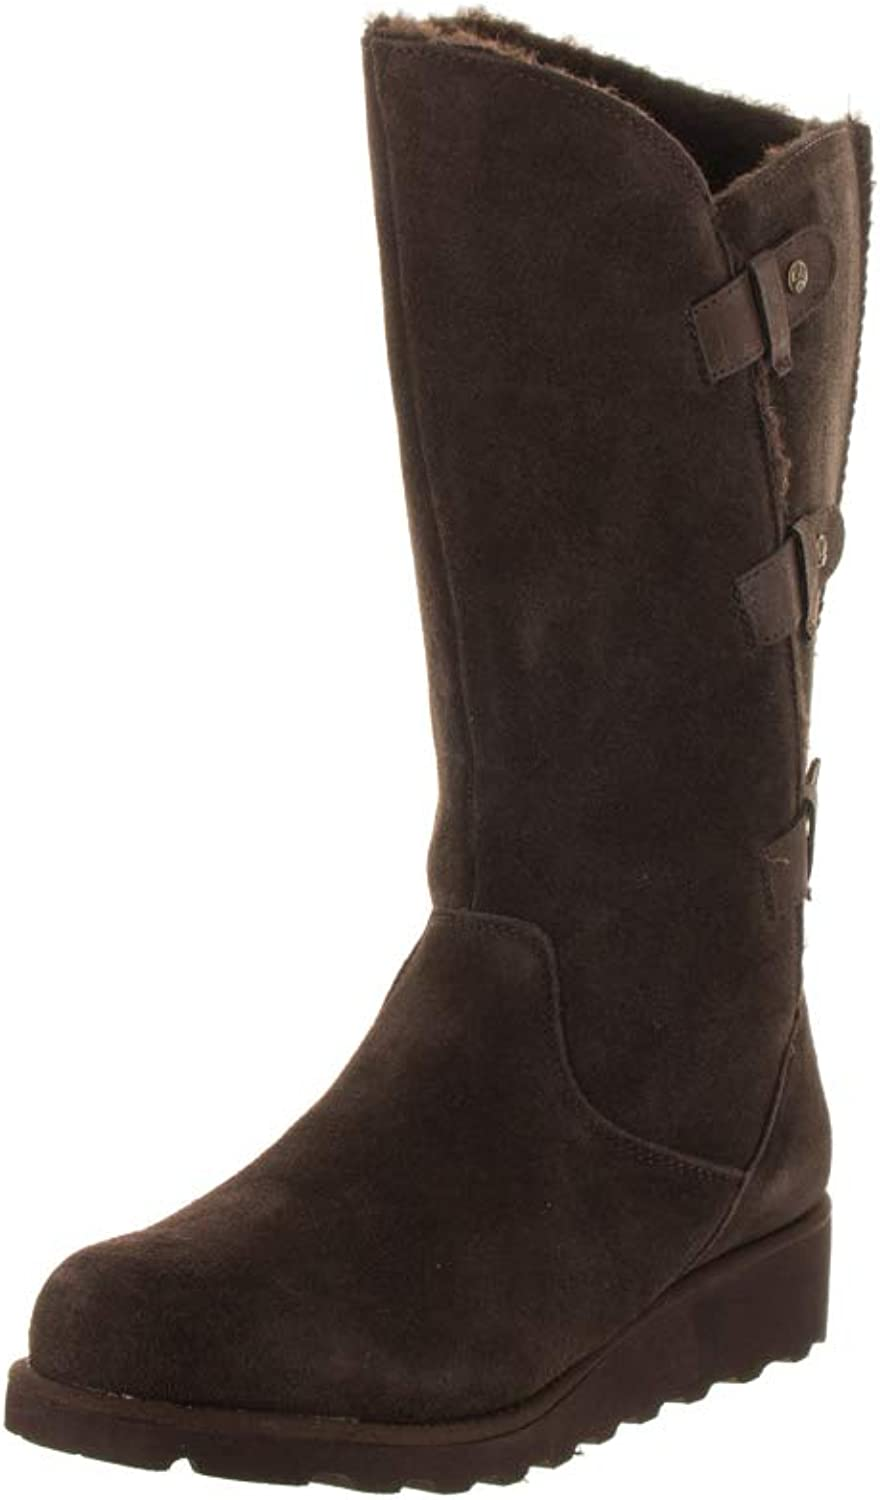 Bearpaw Womens Rubber Closed Toe Knee High Fashion Boots